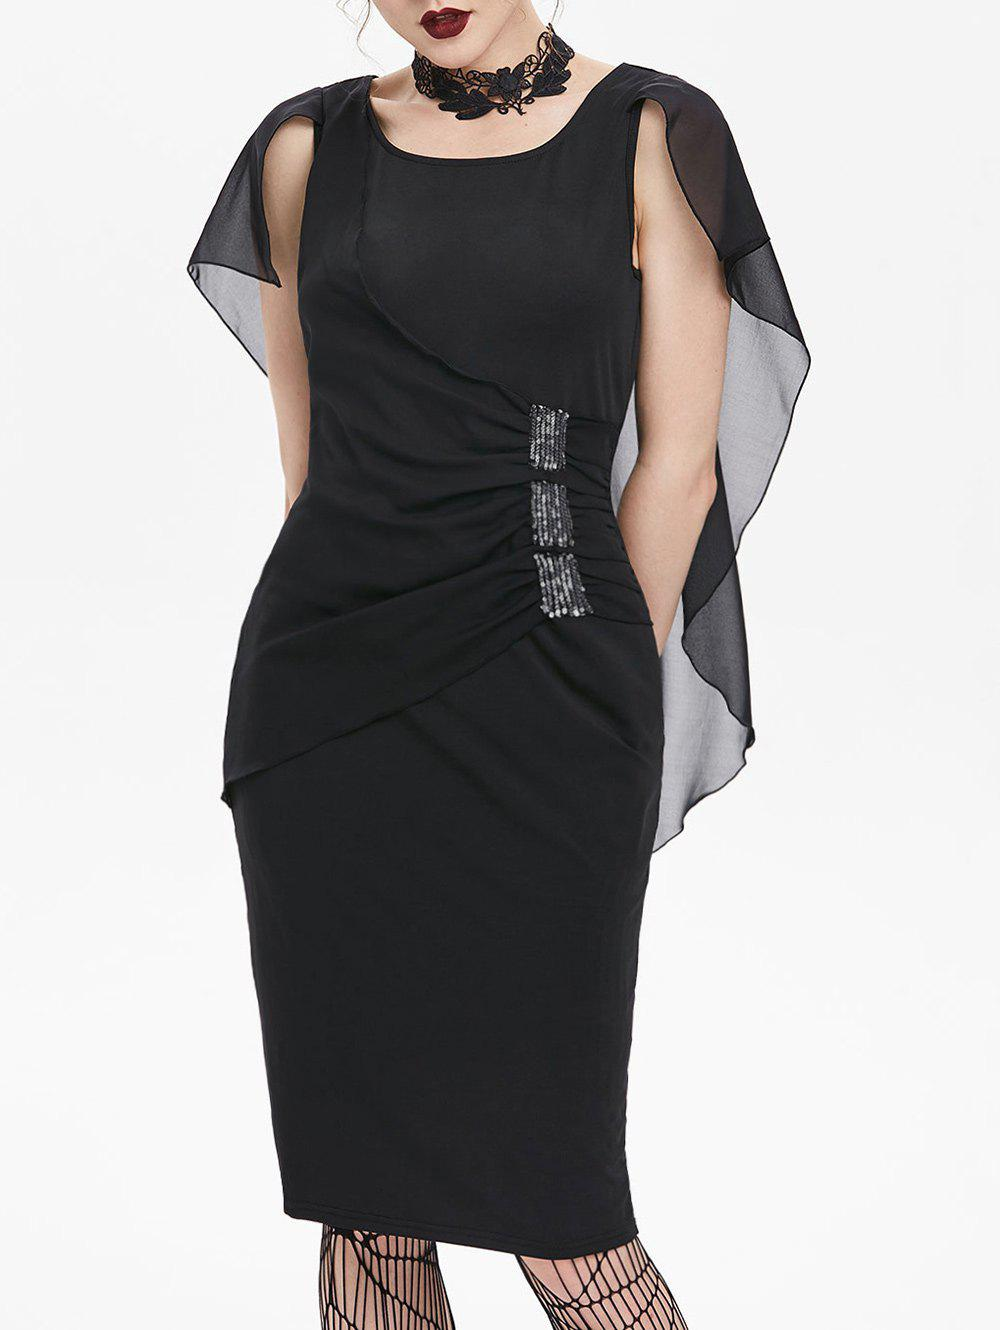 Trendy Sequined Ruched Chiffon Insert Cape Bodycon Gothic Dress